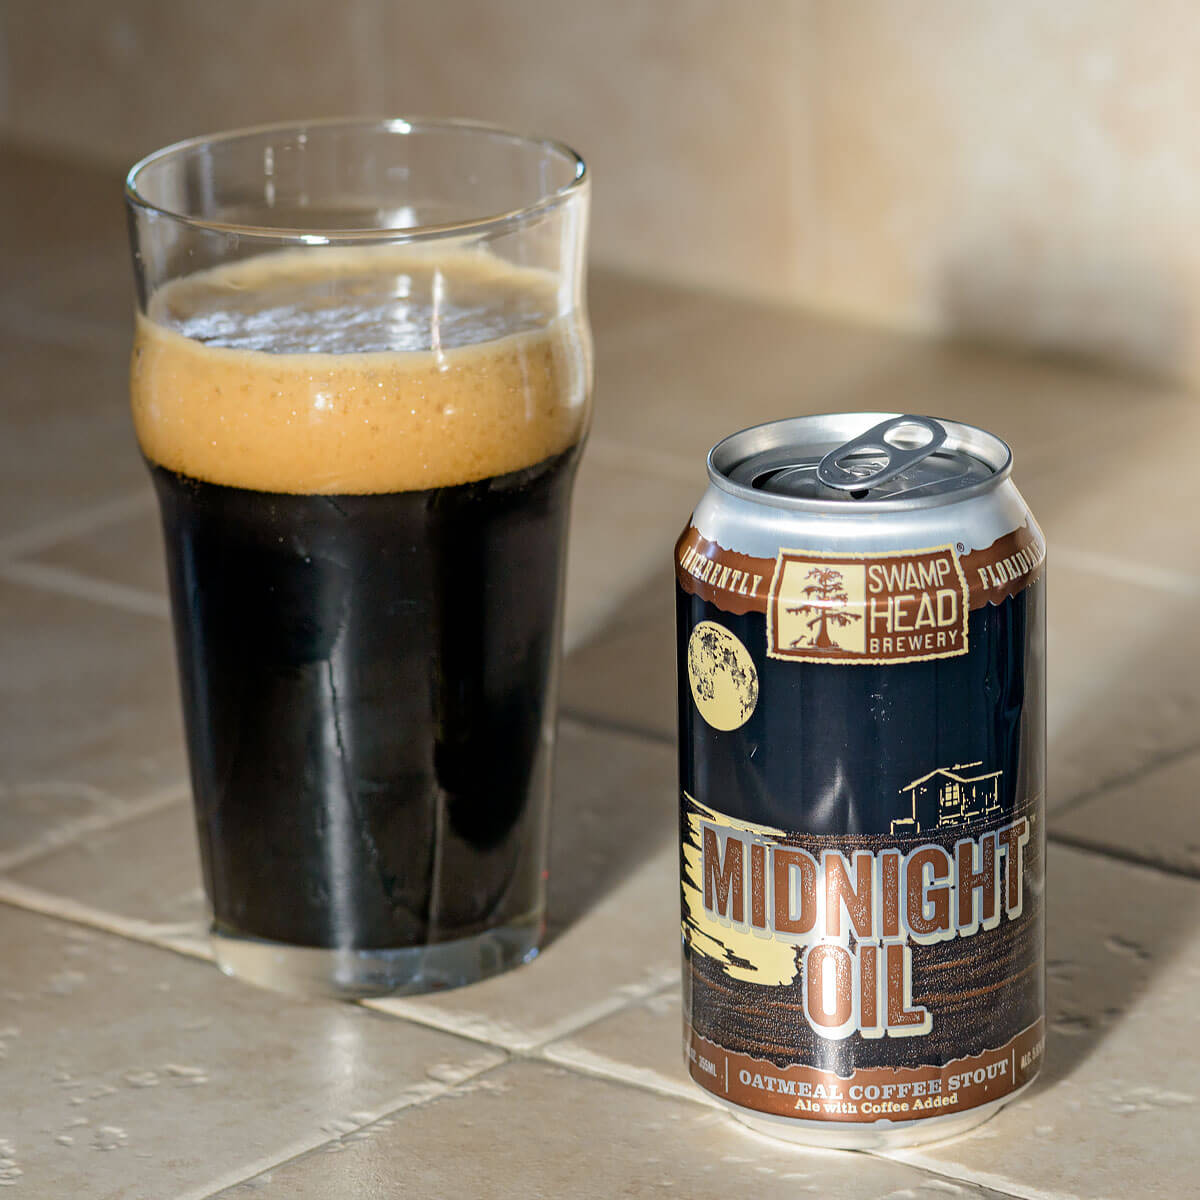 Midnight Oil, an English-style Oatmeal Stout by Swamp Head Brewery